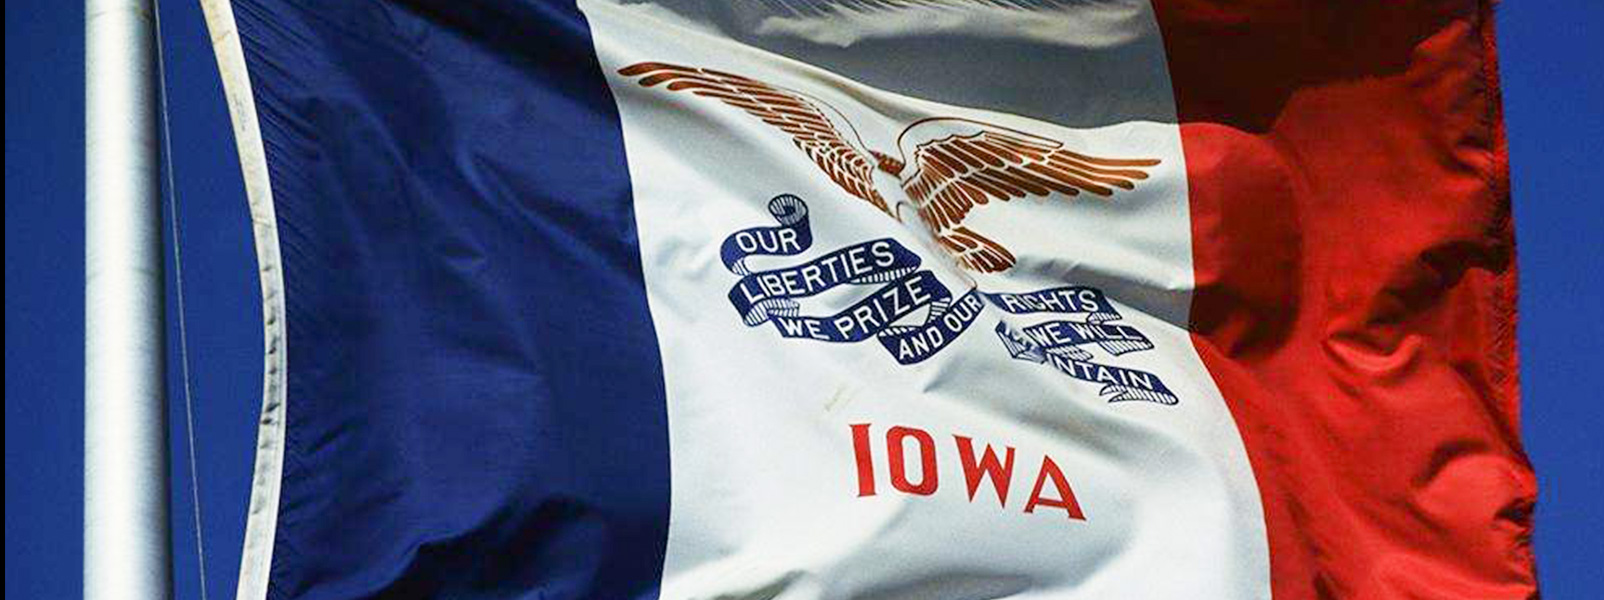 IOWA: SUPPRESSOR OWNERSHIP LEGISLATION PASSES COMMITTEE, FULL VOTE EXPECTED IN HOUSE